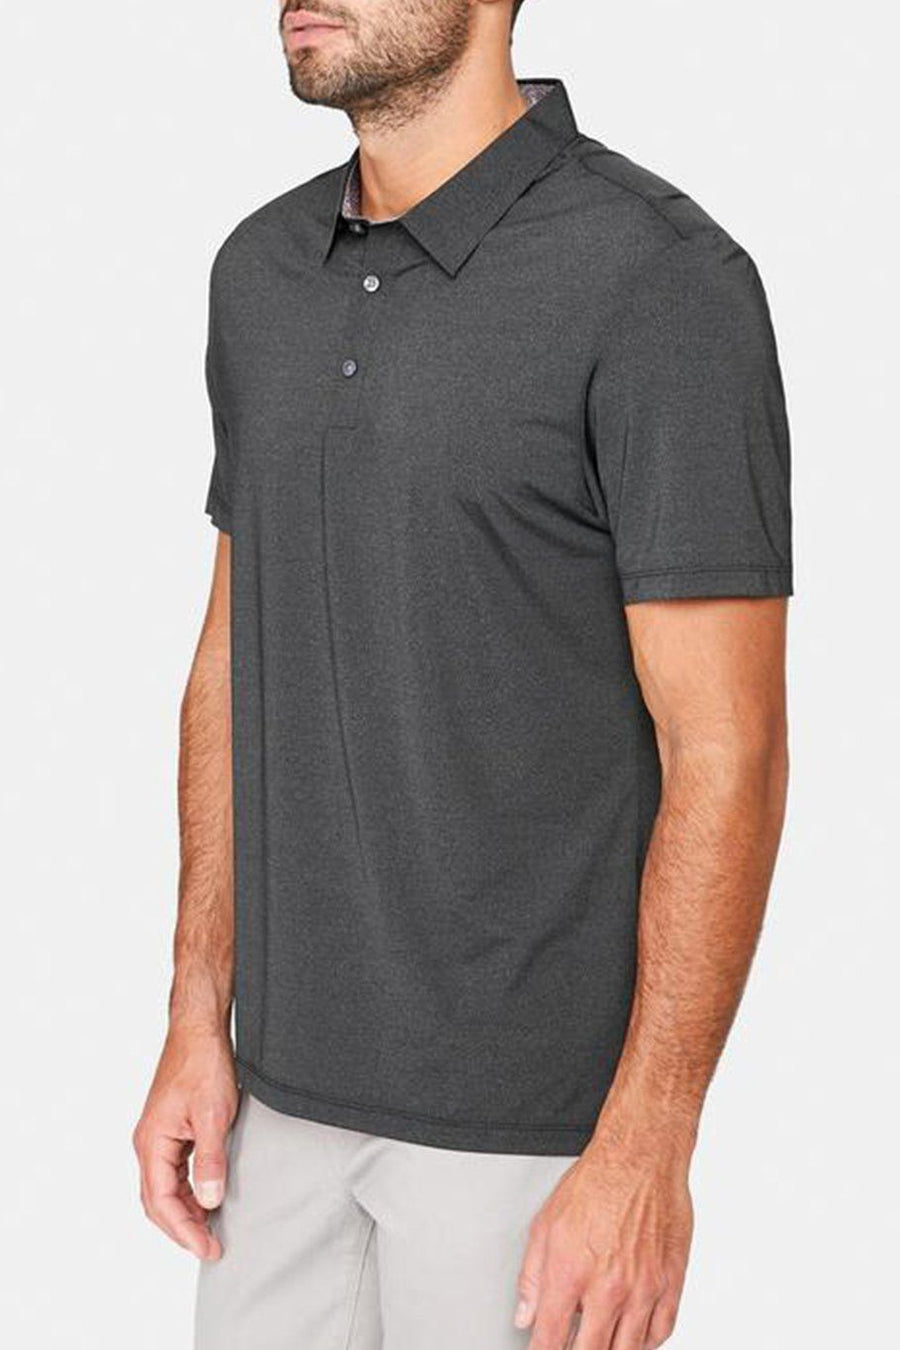 Albatross Seamless Performance Polo - Charcoal - Shore